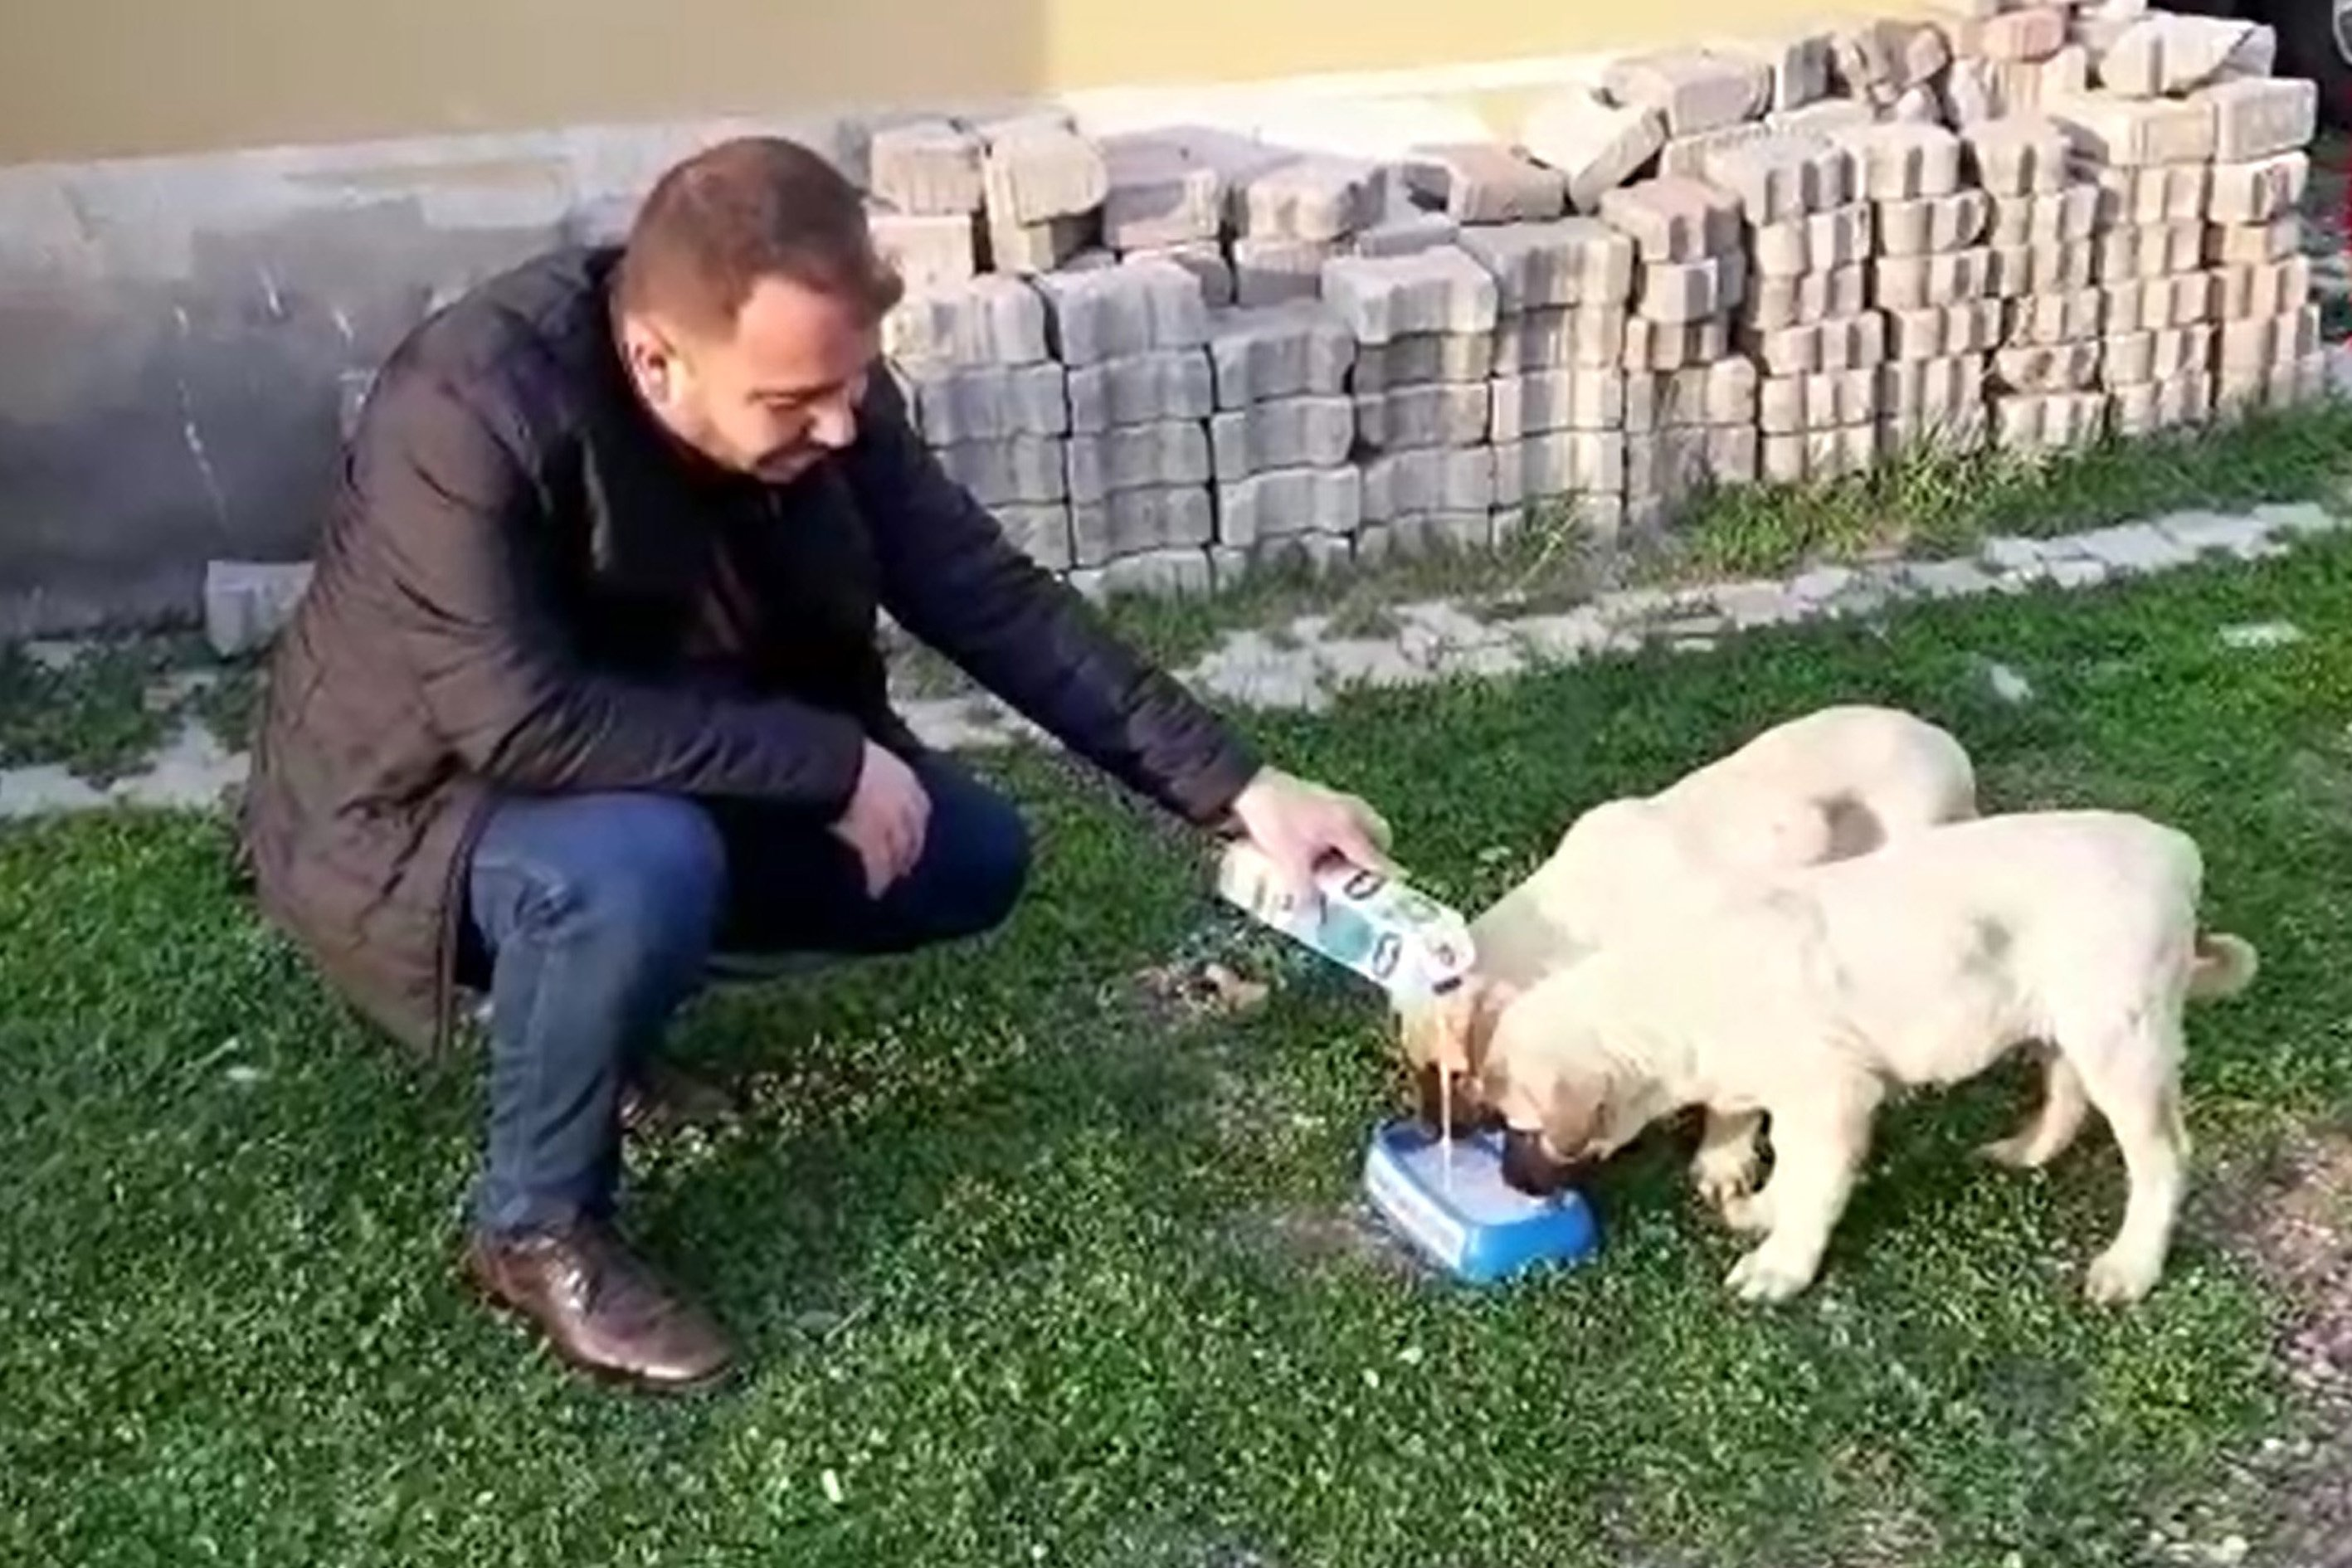 A municipality worker pours milk for stray dogs, in Elazığ province, on April 8, 2020. Many municipalities began providing food and water to street animals to prevent starvation and dehydration. (AA Photo)